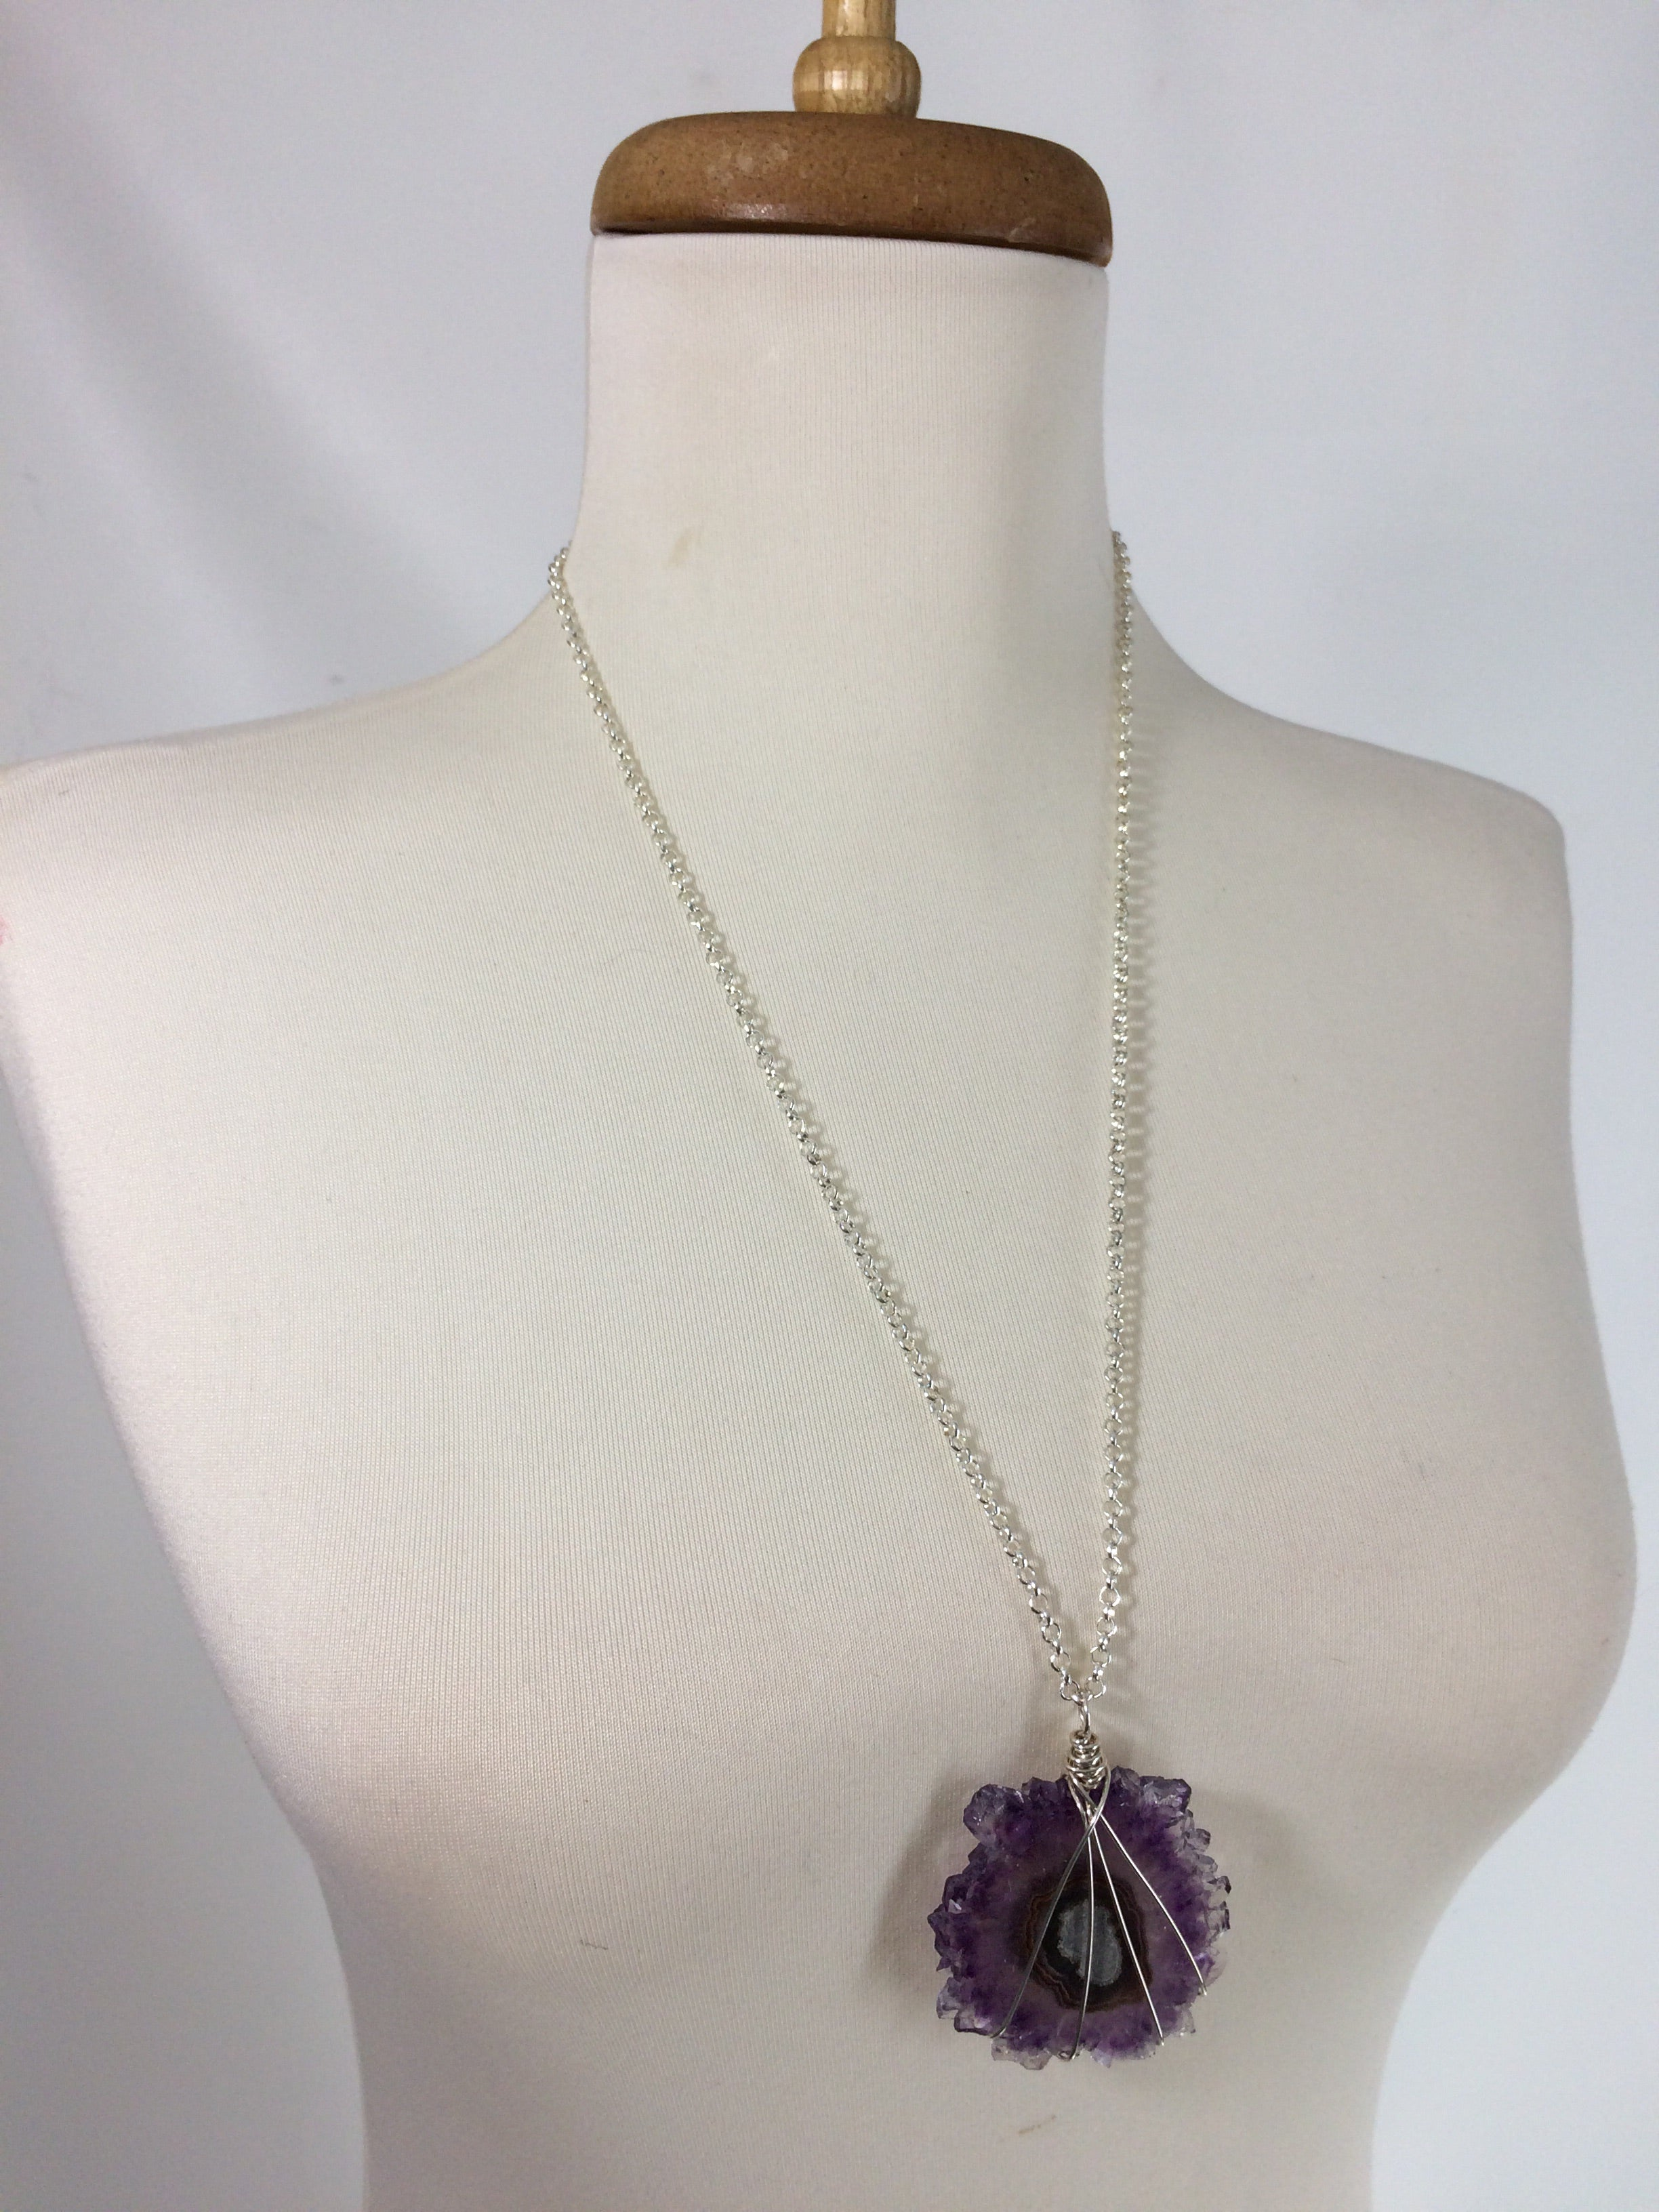 Handmade Sterling Silver Filled Wire Wrapped Amethyst Stalactite Slice Flower Pendant Necklace - claritycove.com